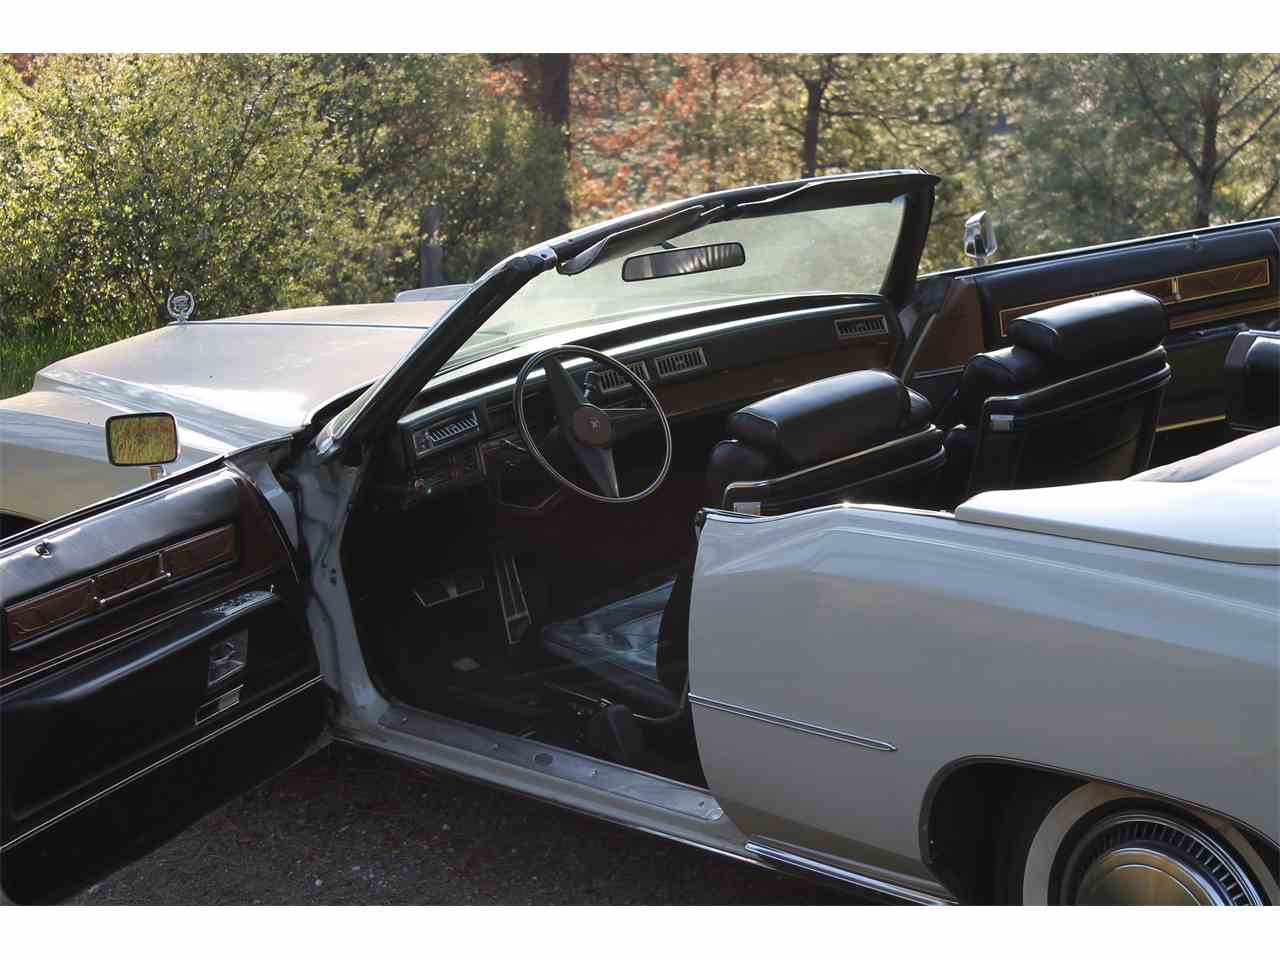 Large Picture of '75 Eldorado - $10,000.00 Offered by a Private Seller - I5ZP